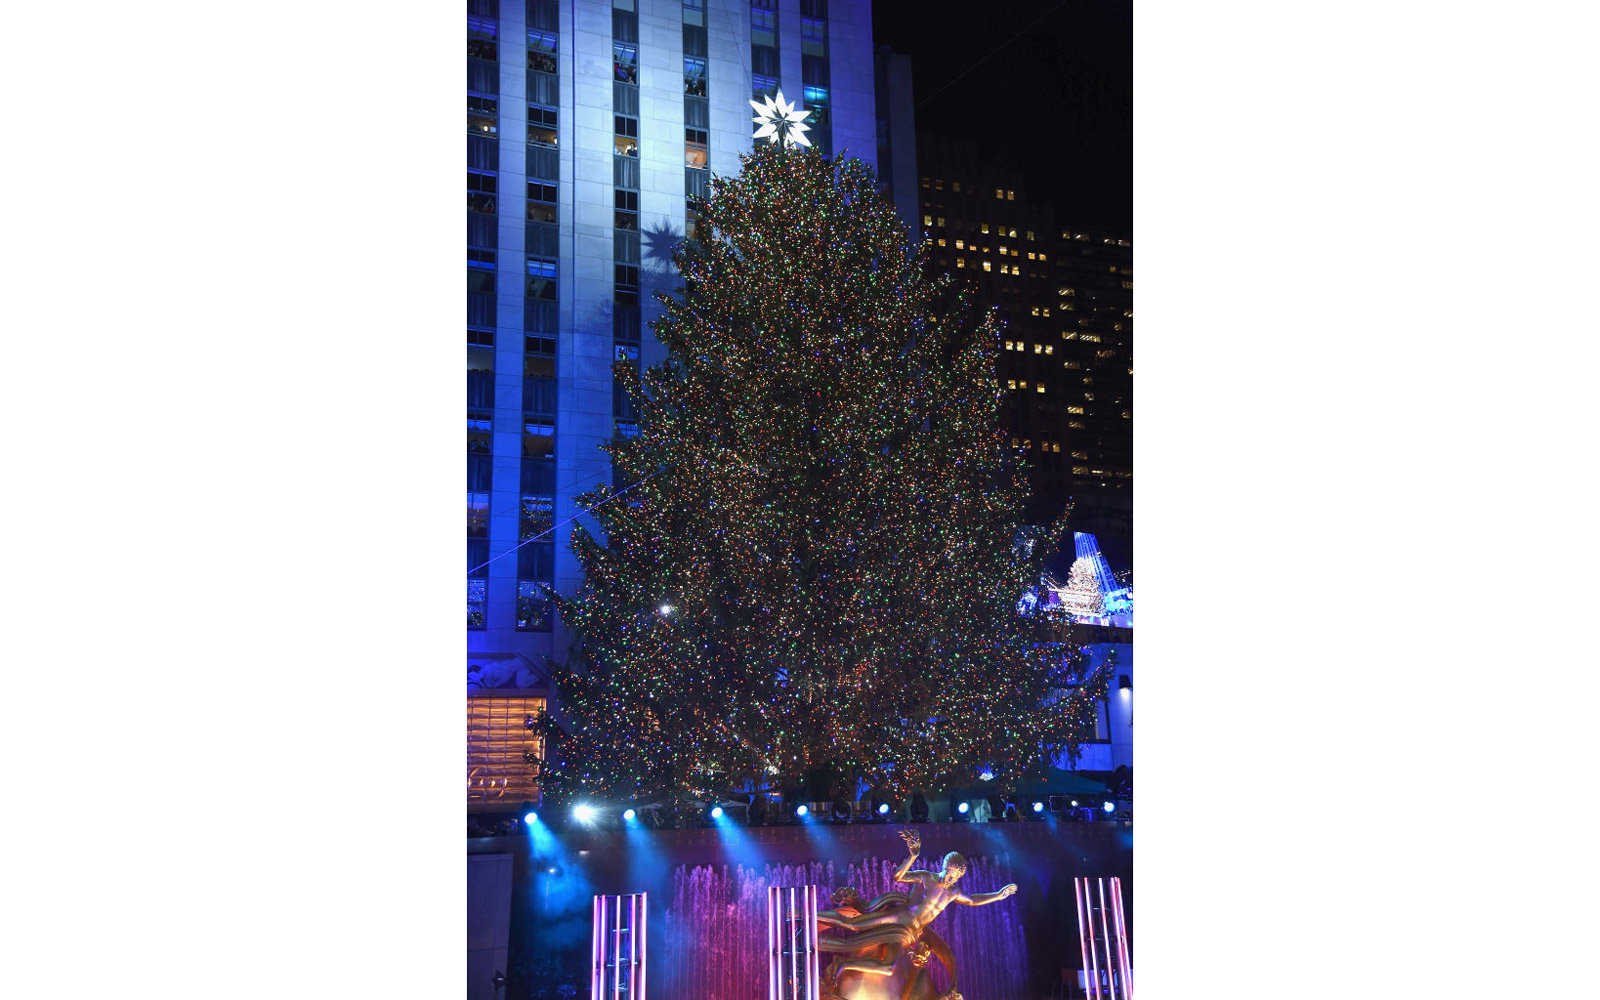 A view of the Christmas Tree at the 85th Rockefeller Center Christmas Tree Lighting Ceremony at Rockefeller Center on November 29, 2017 in New York City